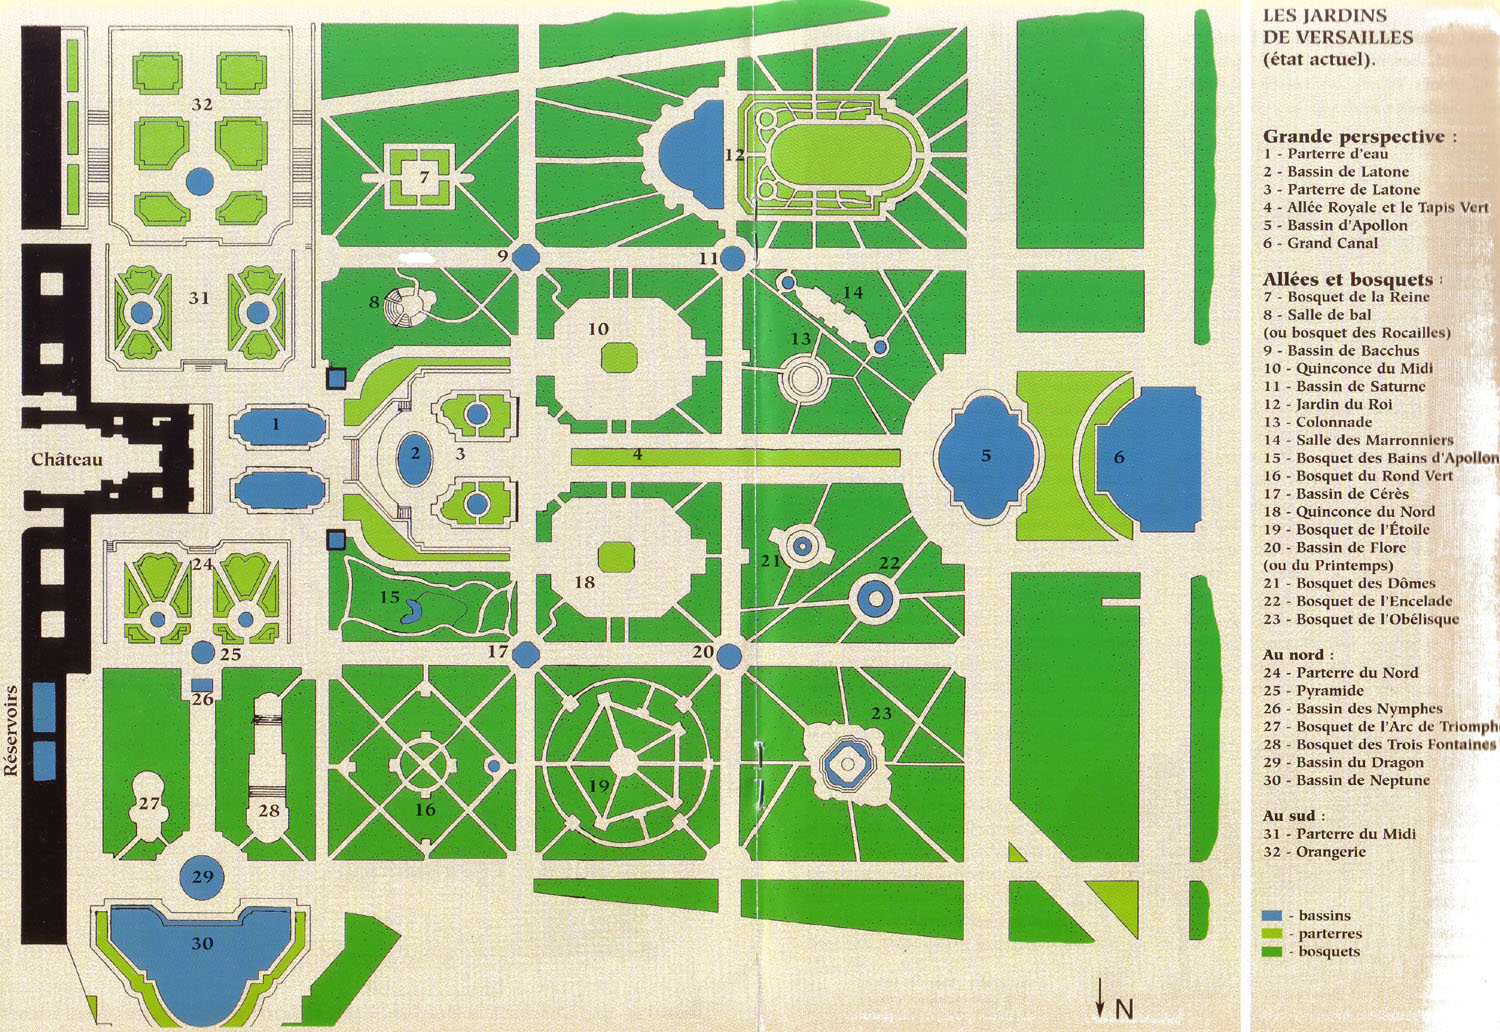 Map of the palace of versailles map of versailles gardens for Plan de jardin